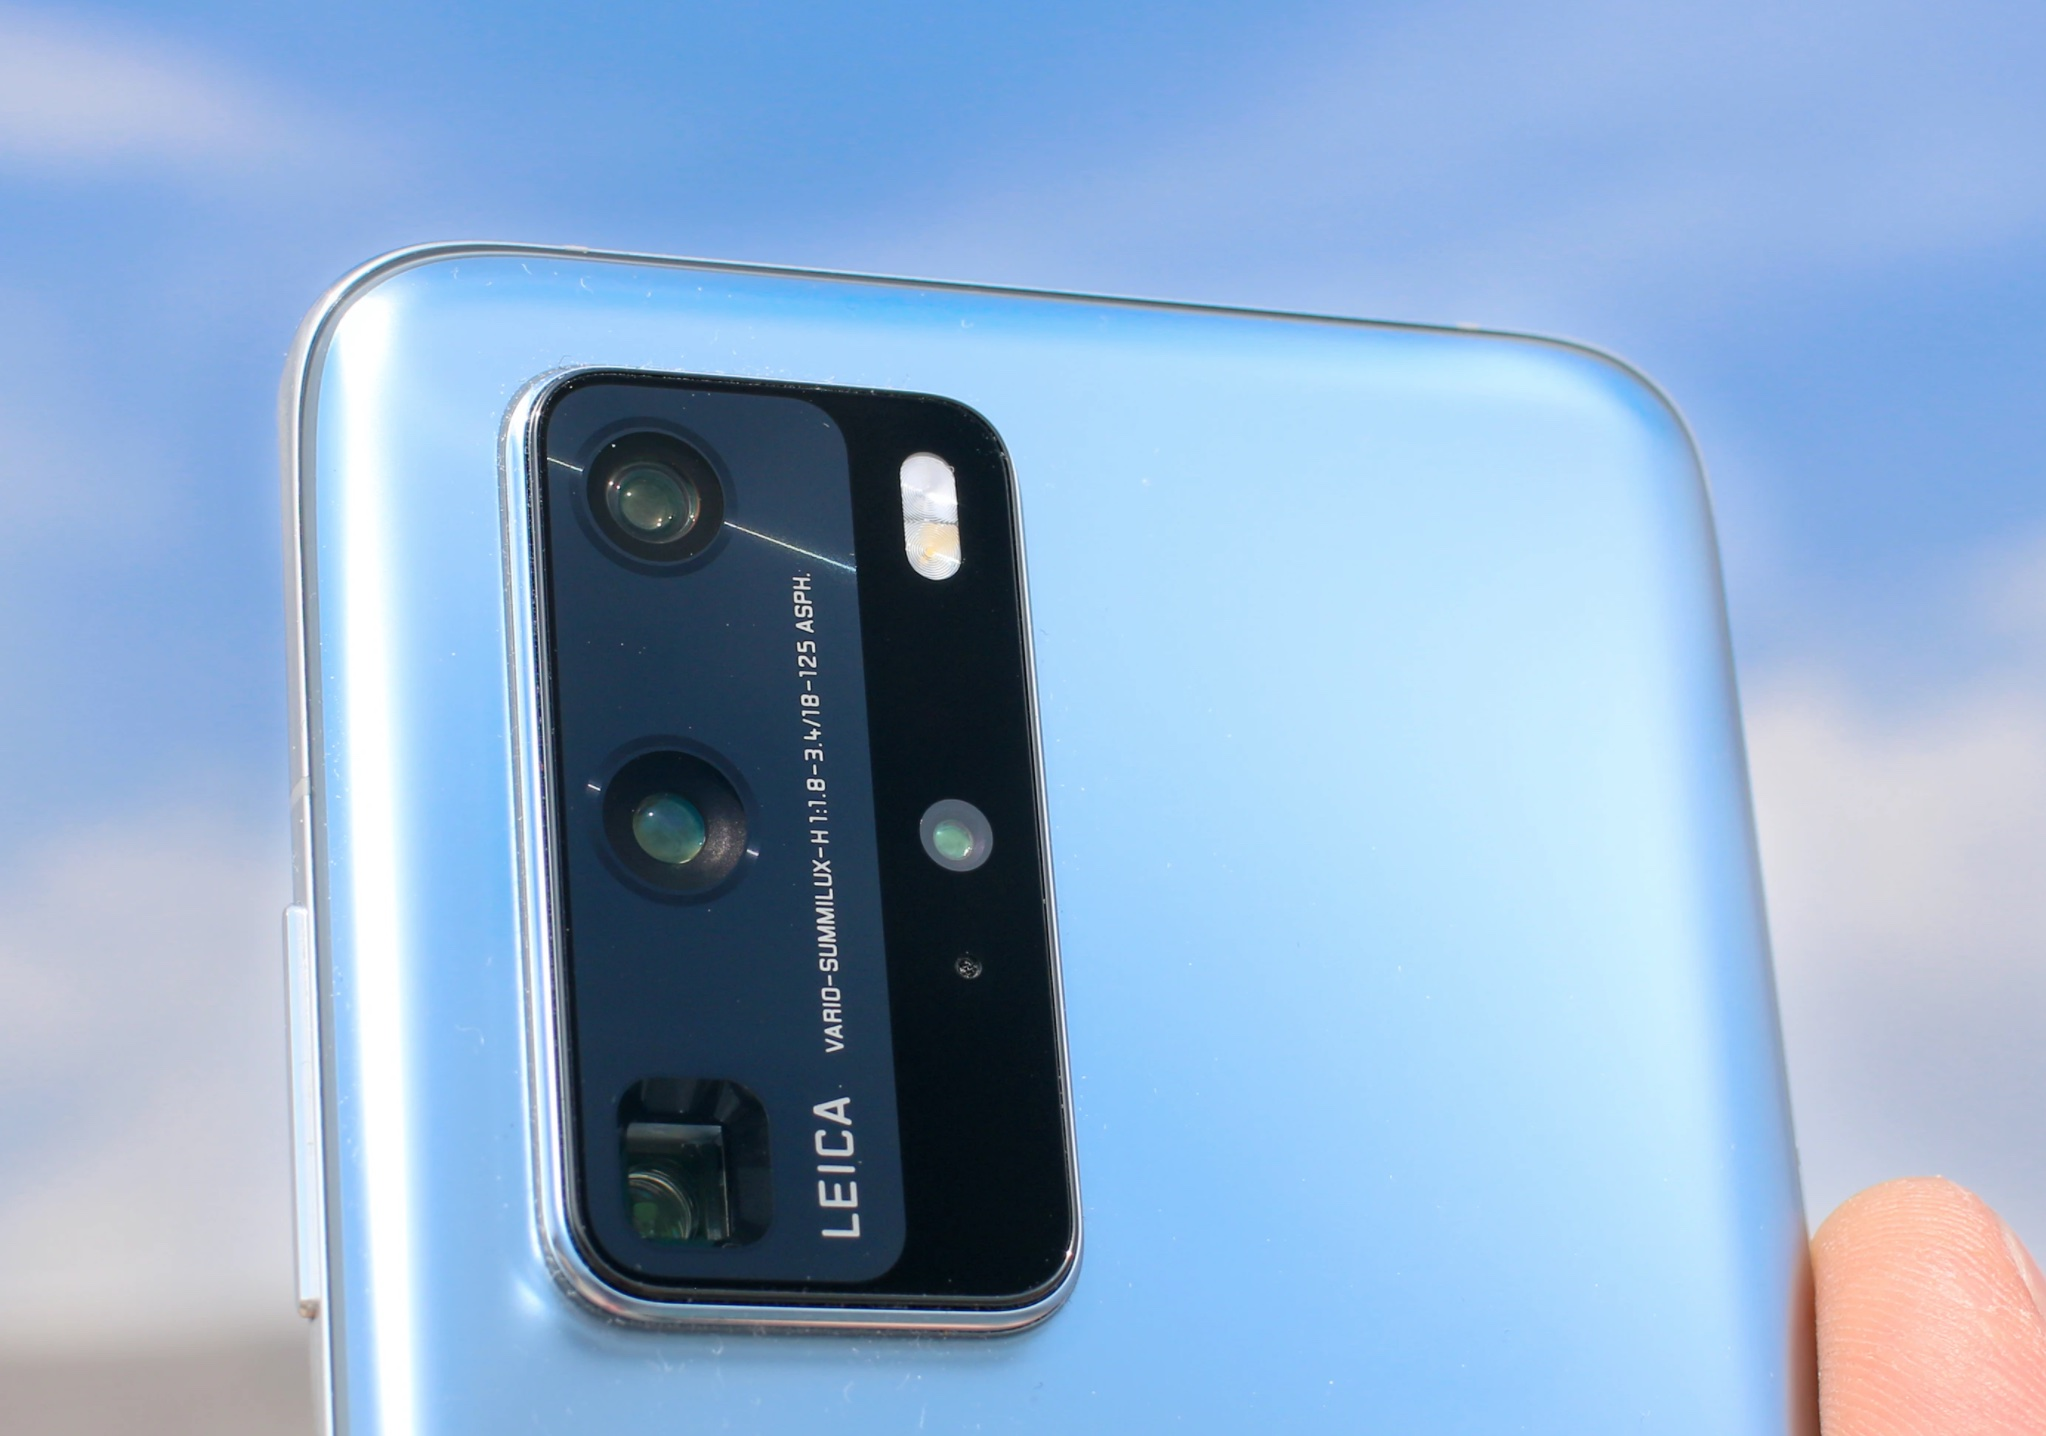 Huawei, Samsung almost tied for No 1 smartphone maker in Q2, Gartner data shows-cnTechPost